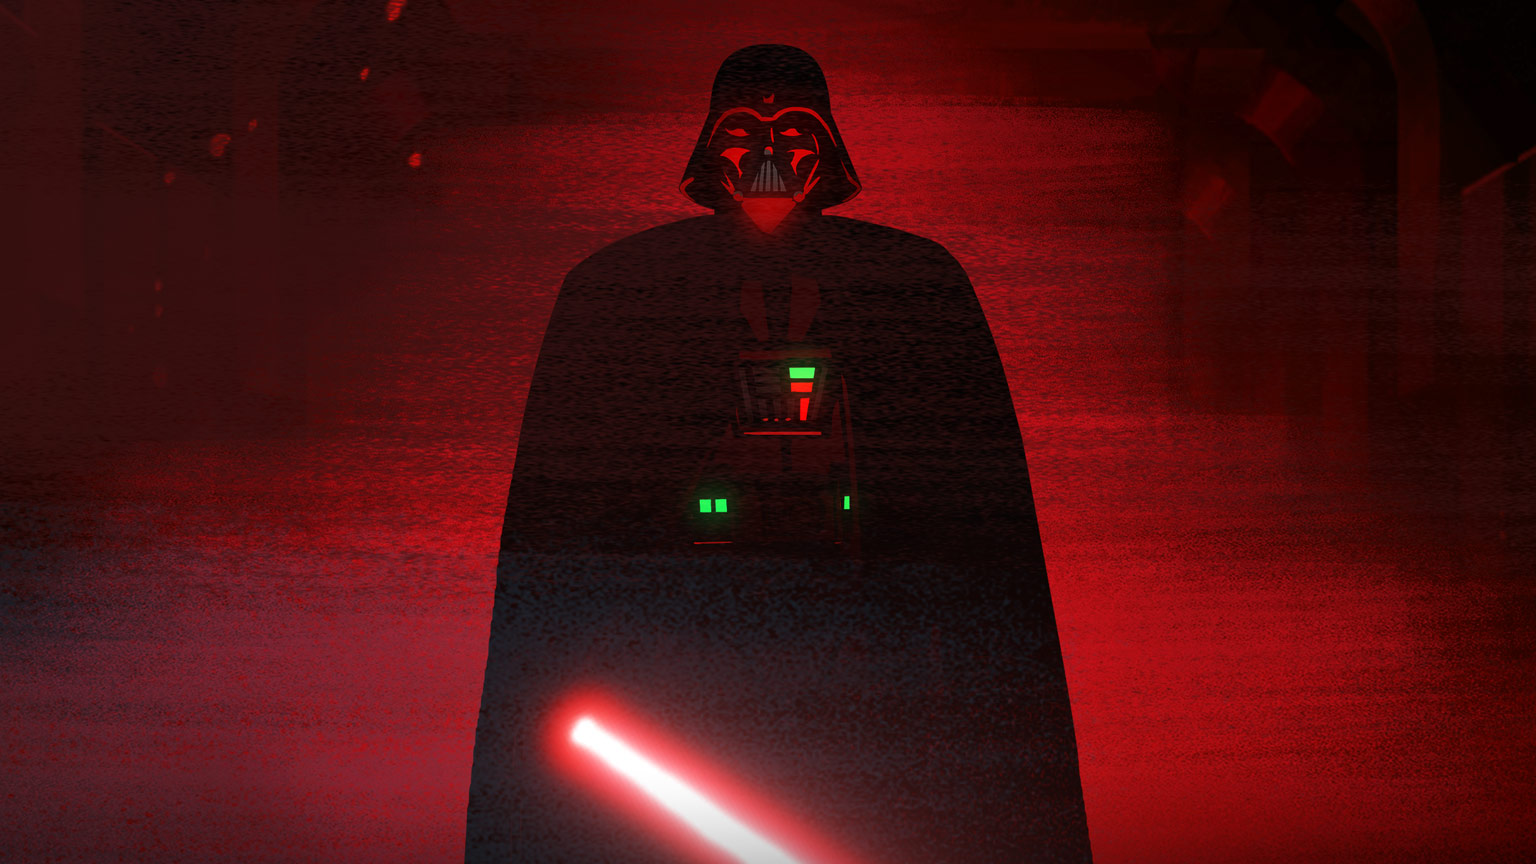 The all-new animated Star Wars shorts have arrived to share the Force…